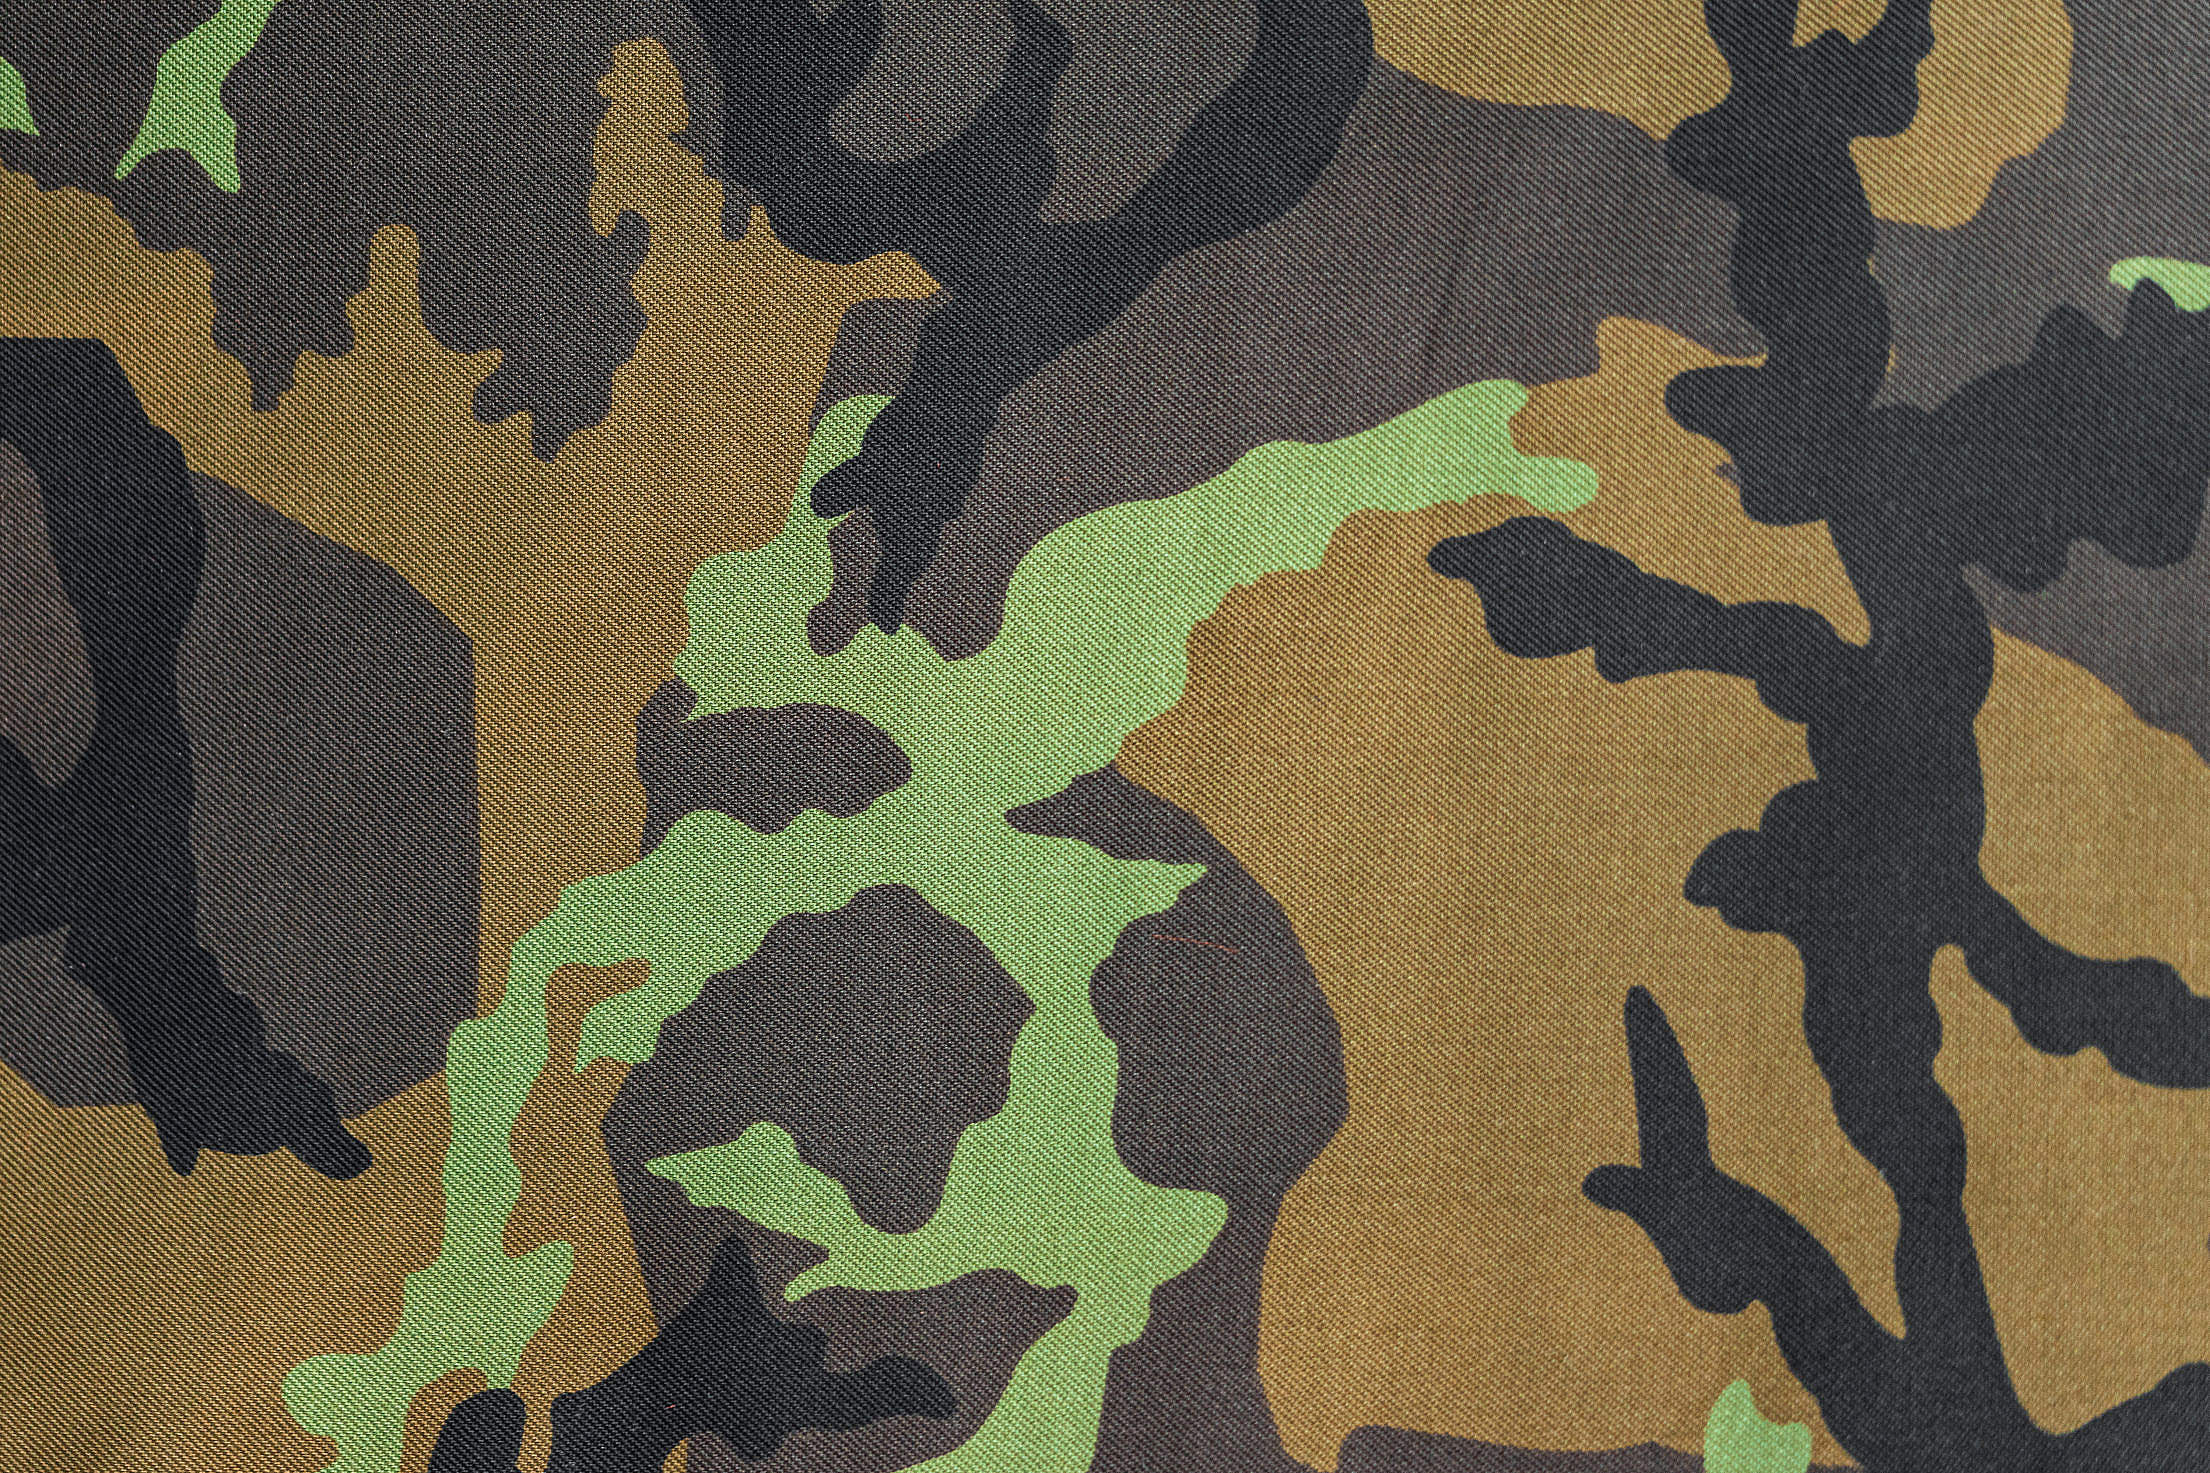 Army Camouflage Pattern Free Stock Photo